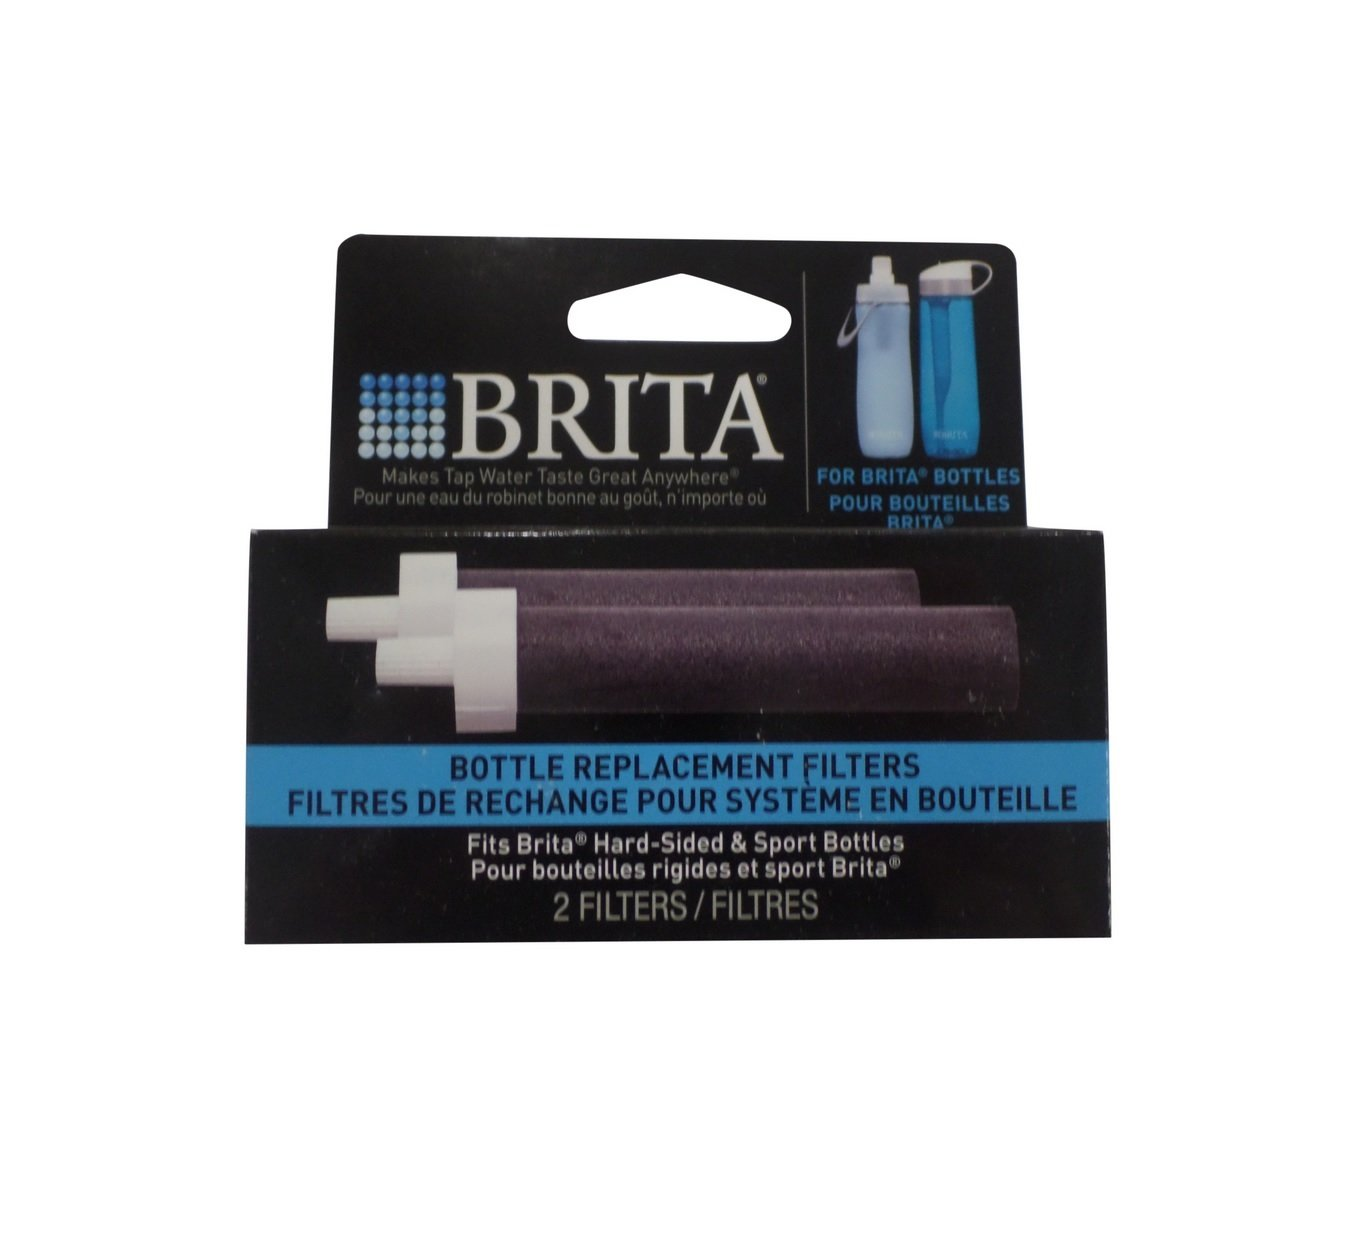 Brita Bottle Replacement Filters, 2 Count: Amazon.ca: Home & Kitchen